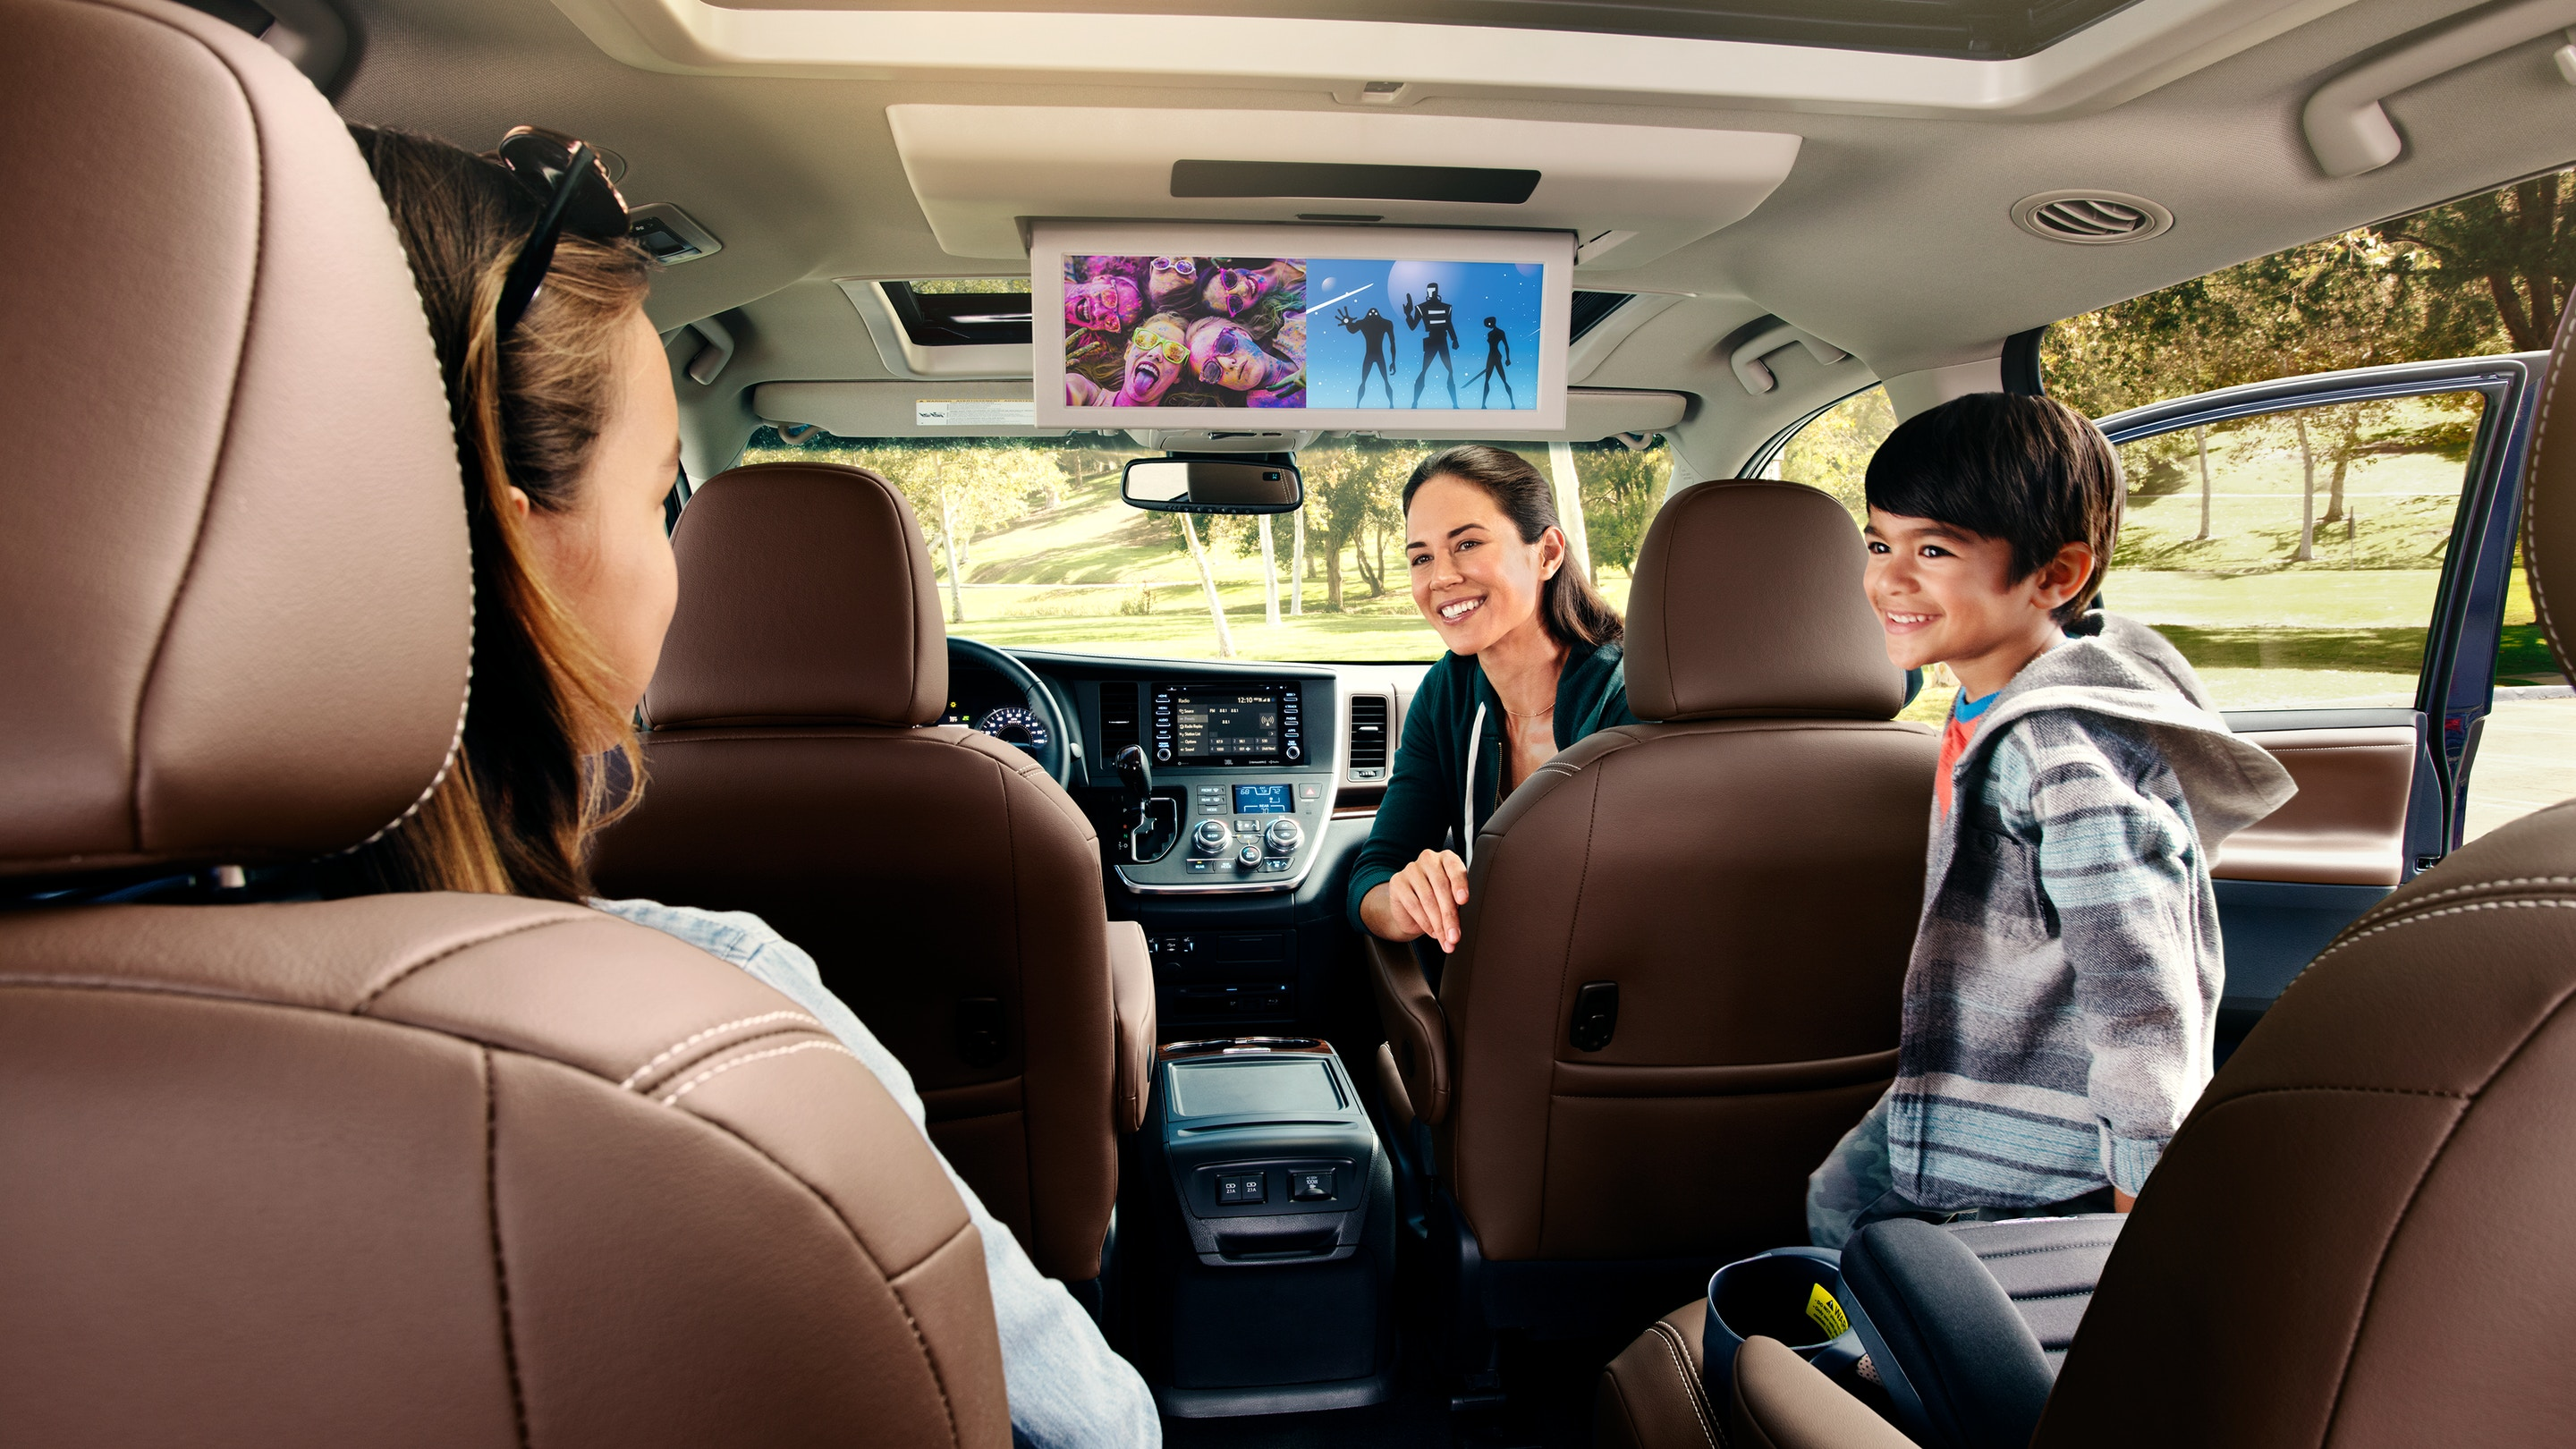 2019 Sienna Entertainment System